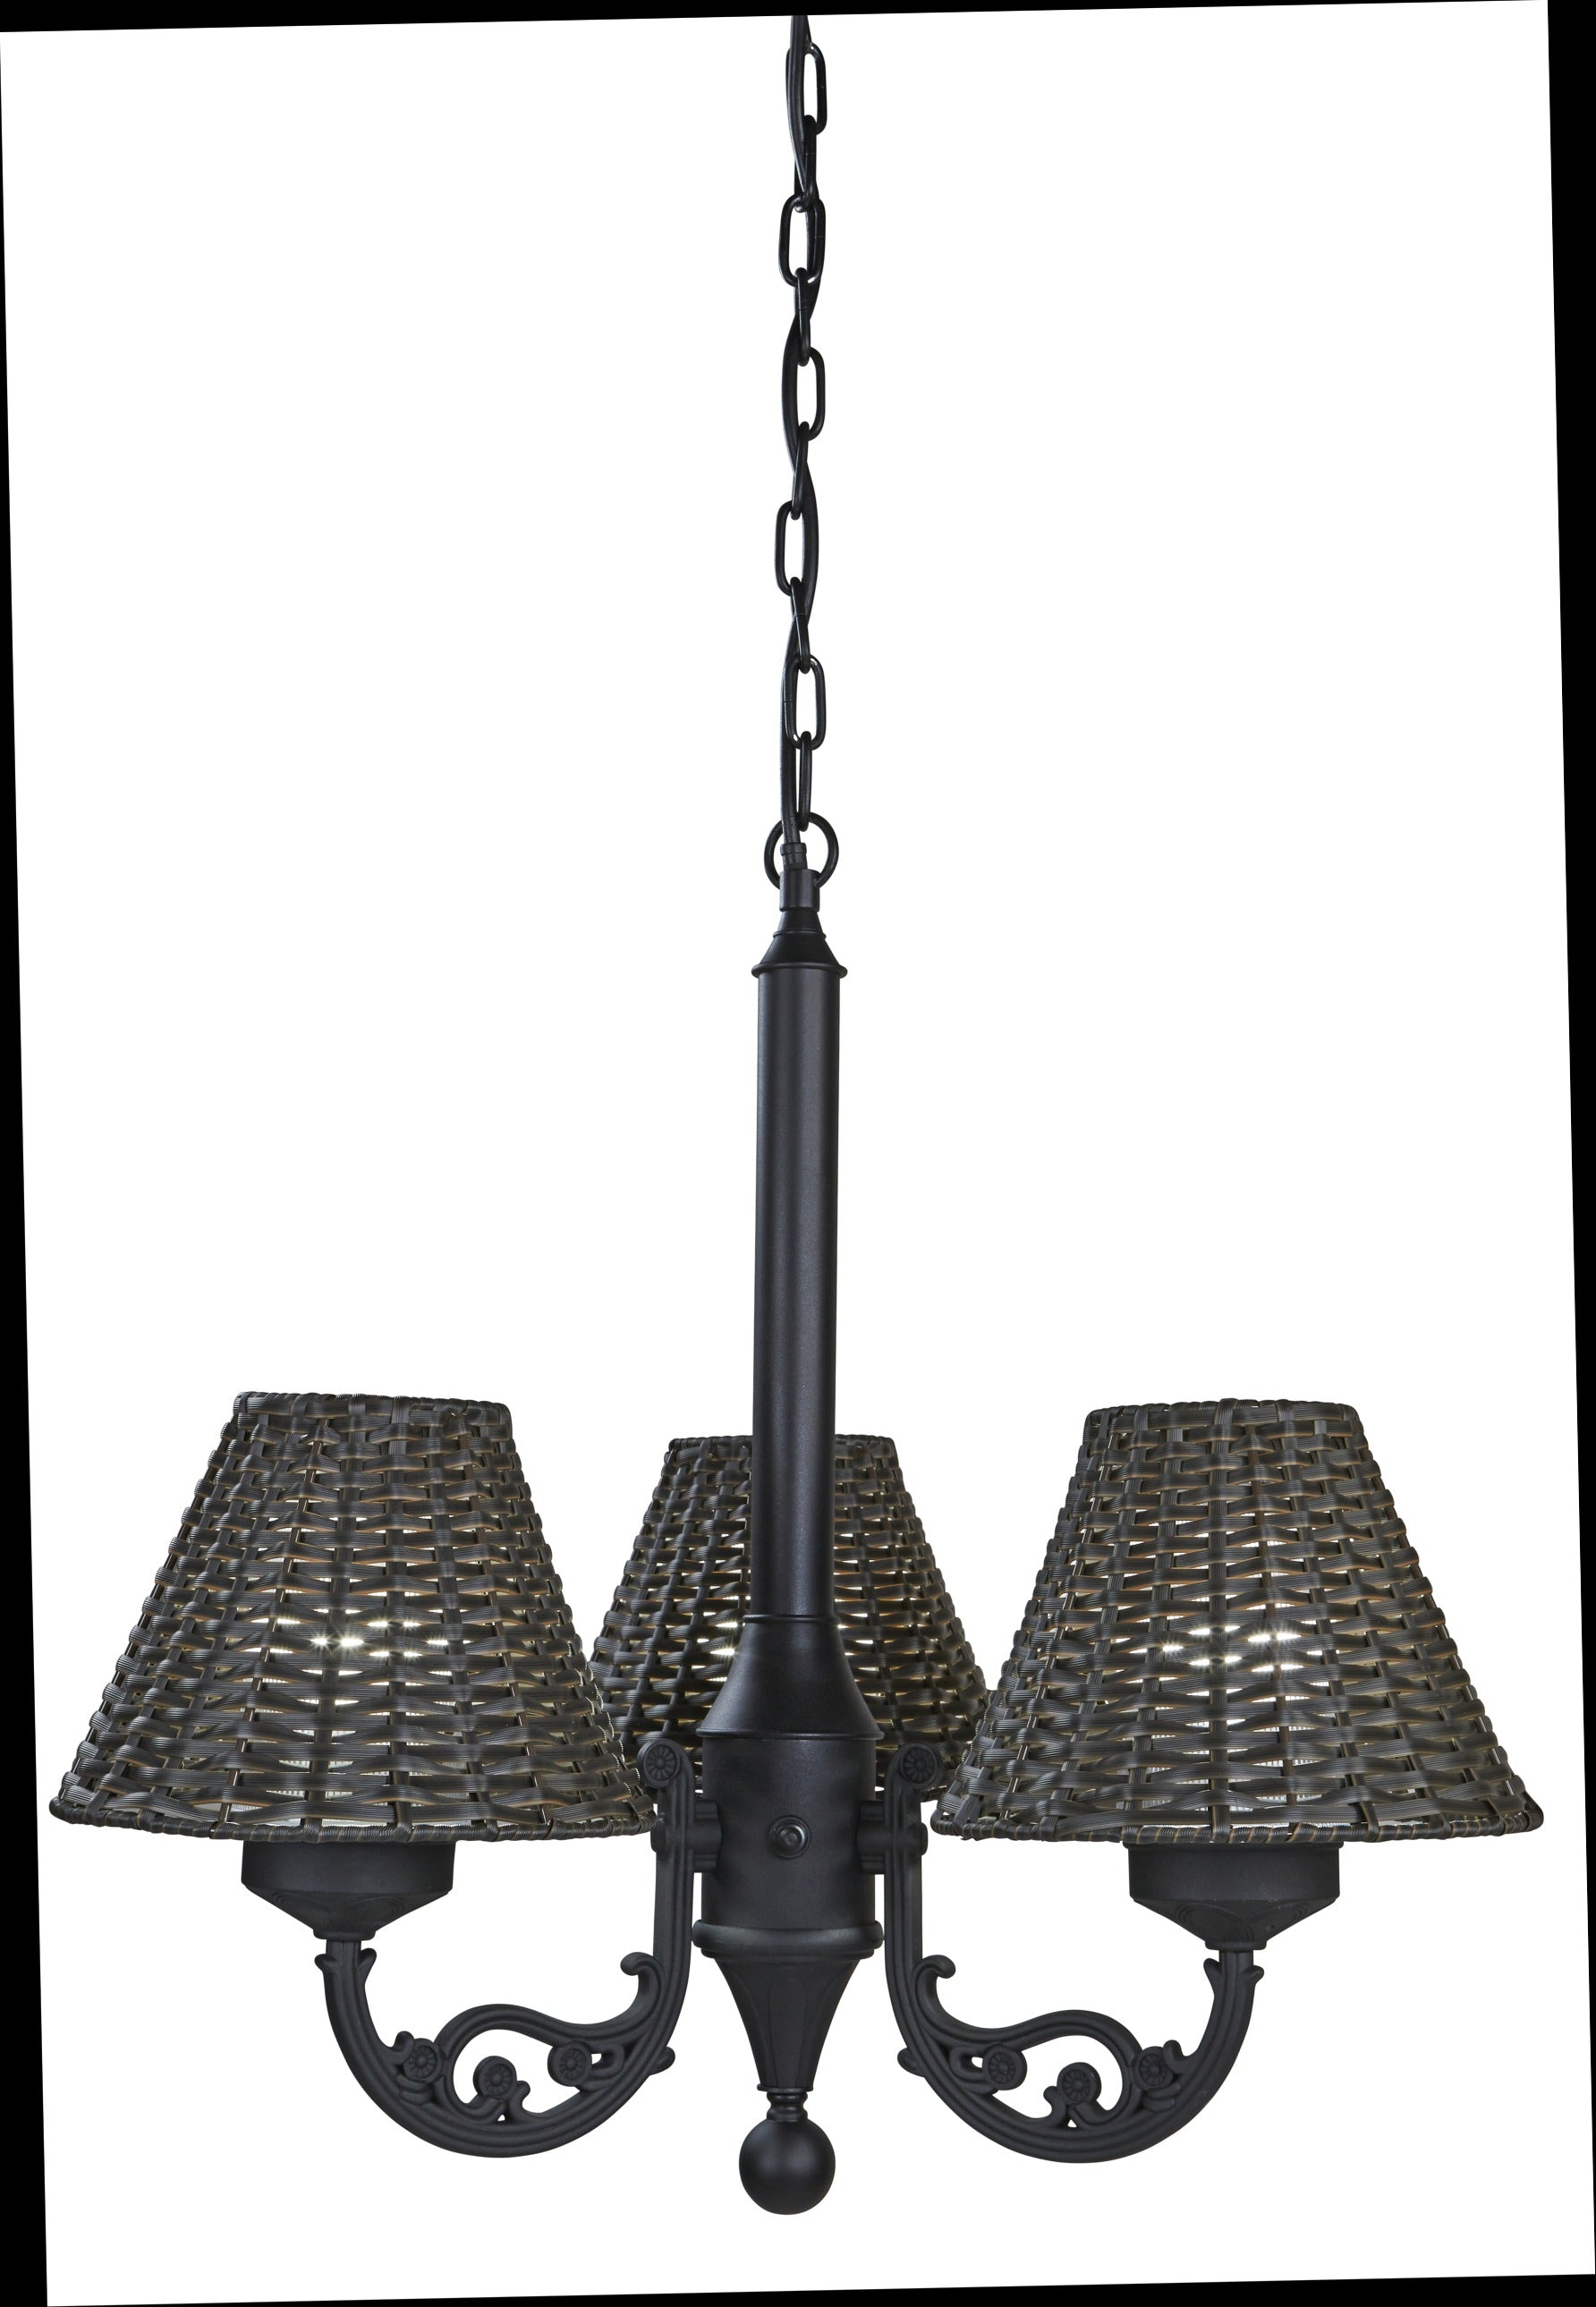 Versailles Chandelier 17750 with Black Body and Walnut Wicker Shades